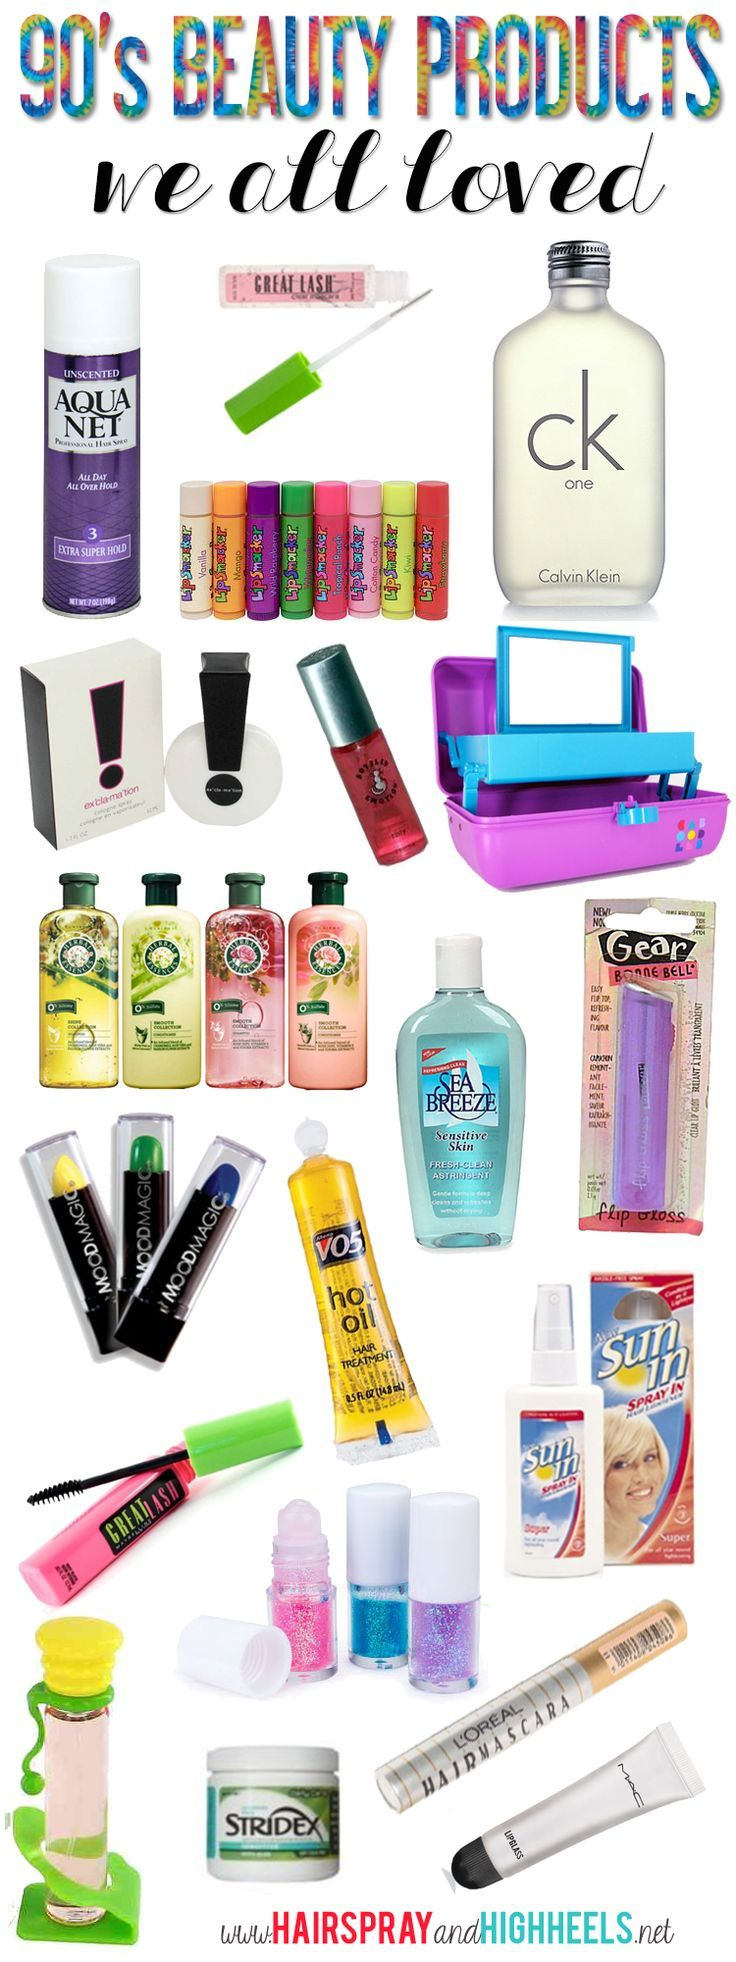 90 S Beauty Products Which Of These Did You Use Beauty Home